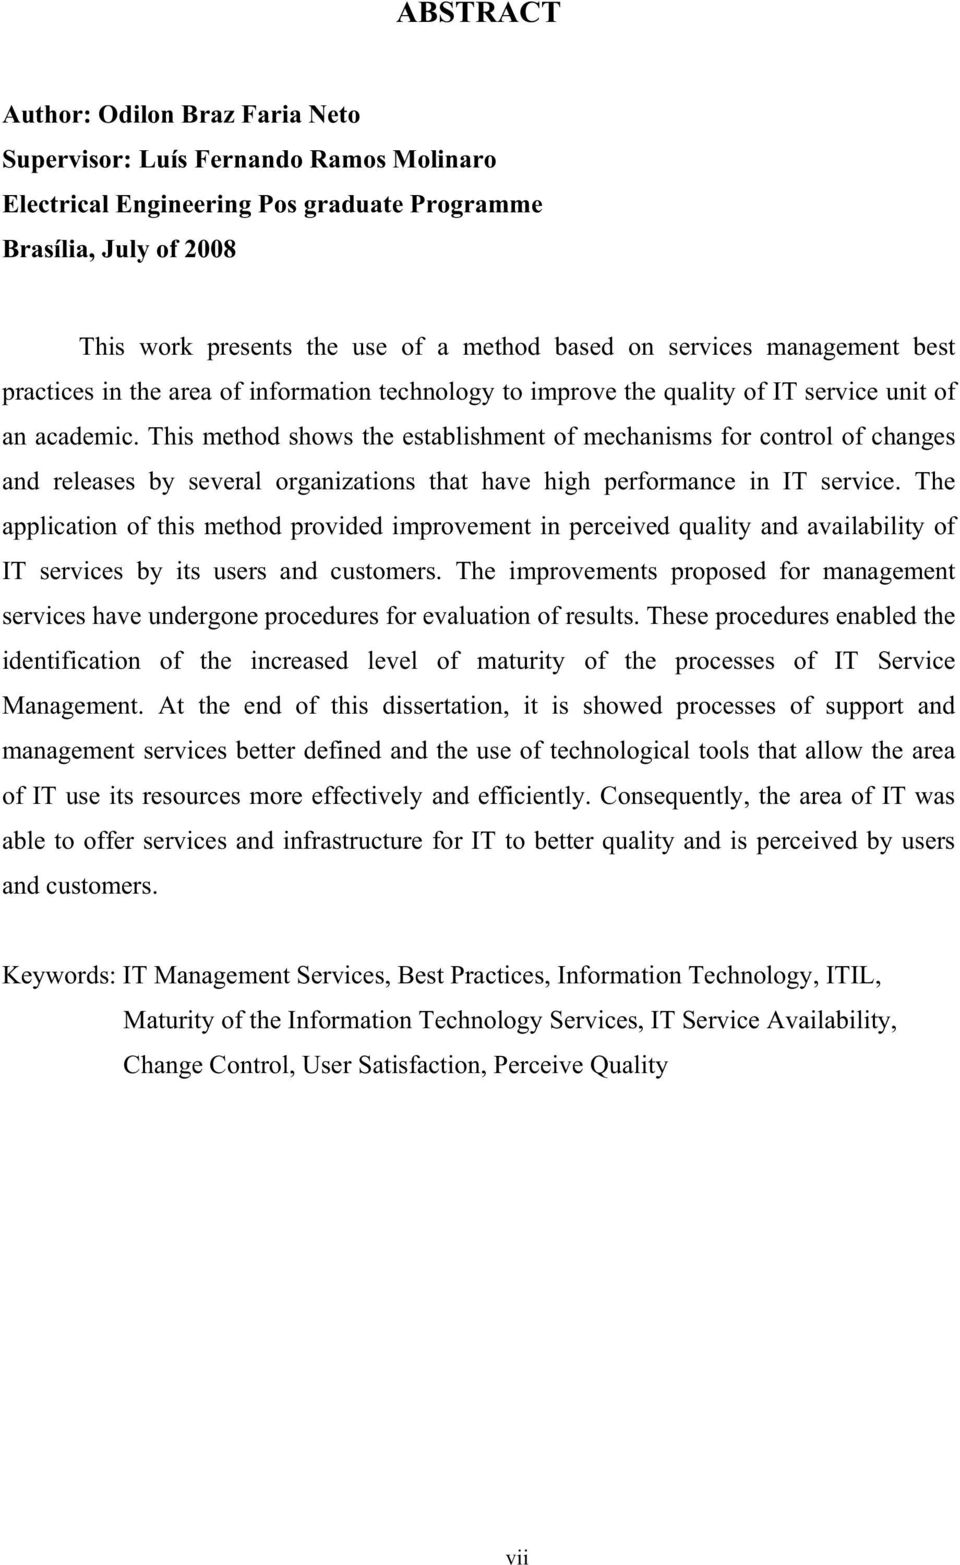 This method shows the establishment of mechanisms for control of changes and releases by several organizations that have high performance in IT service.